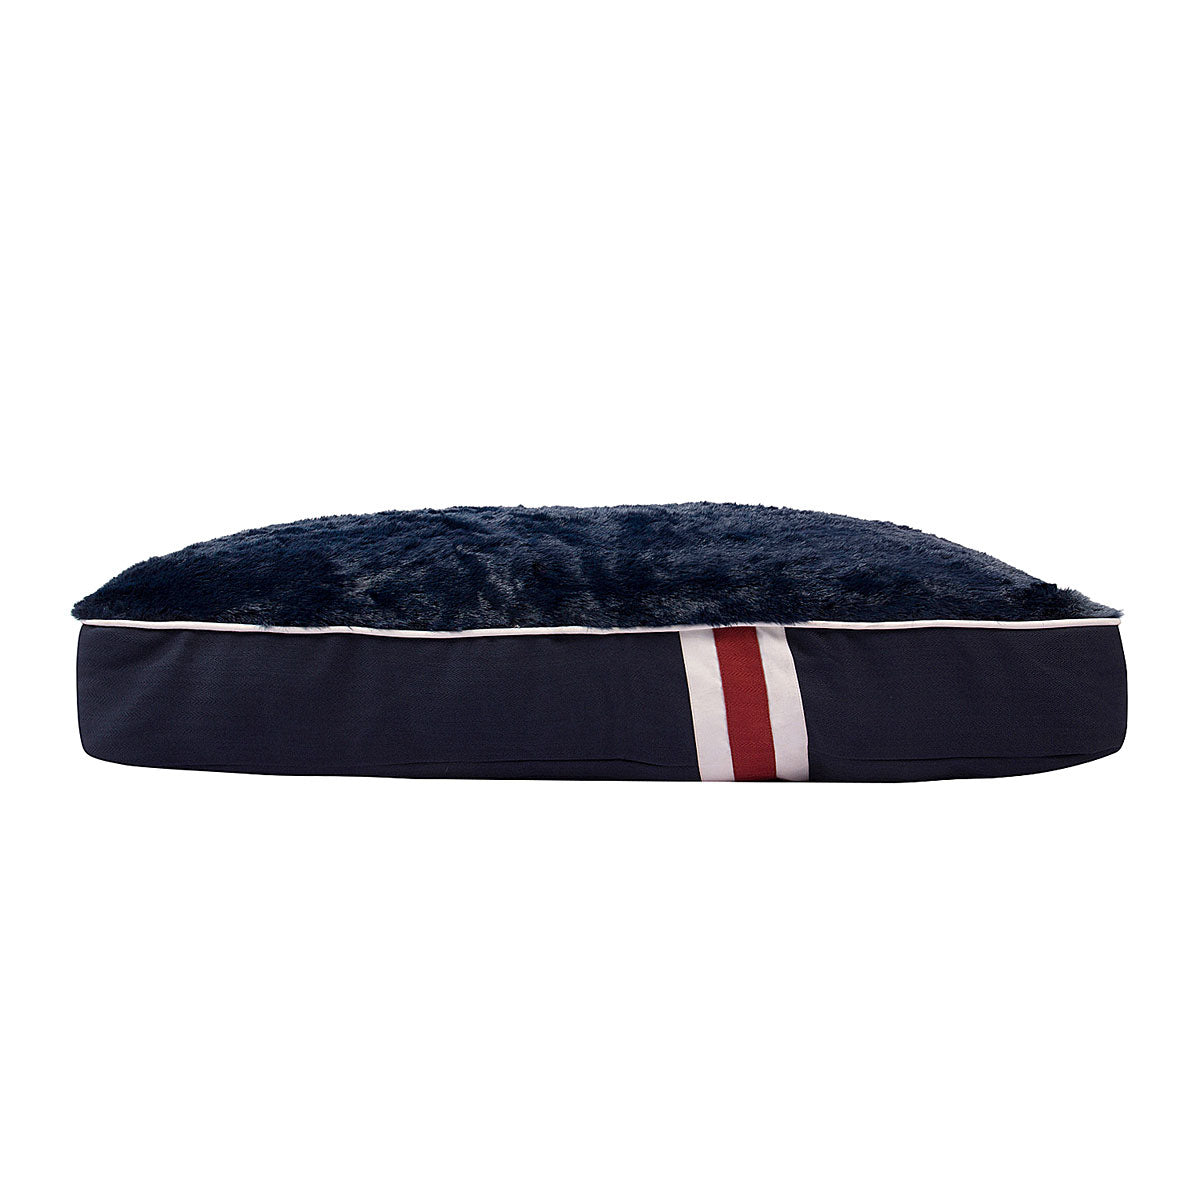 Halo Sam Rectangular Dog Bed_2652